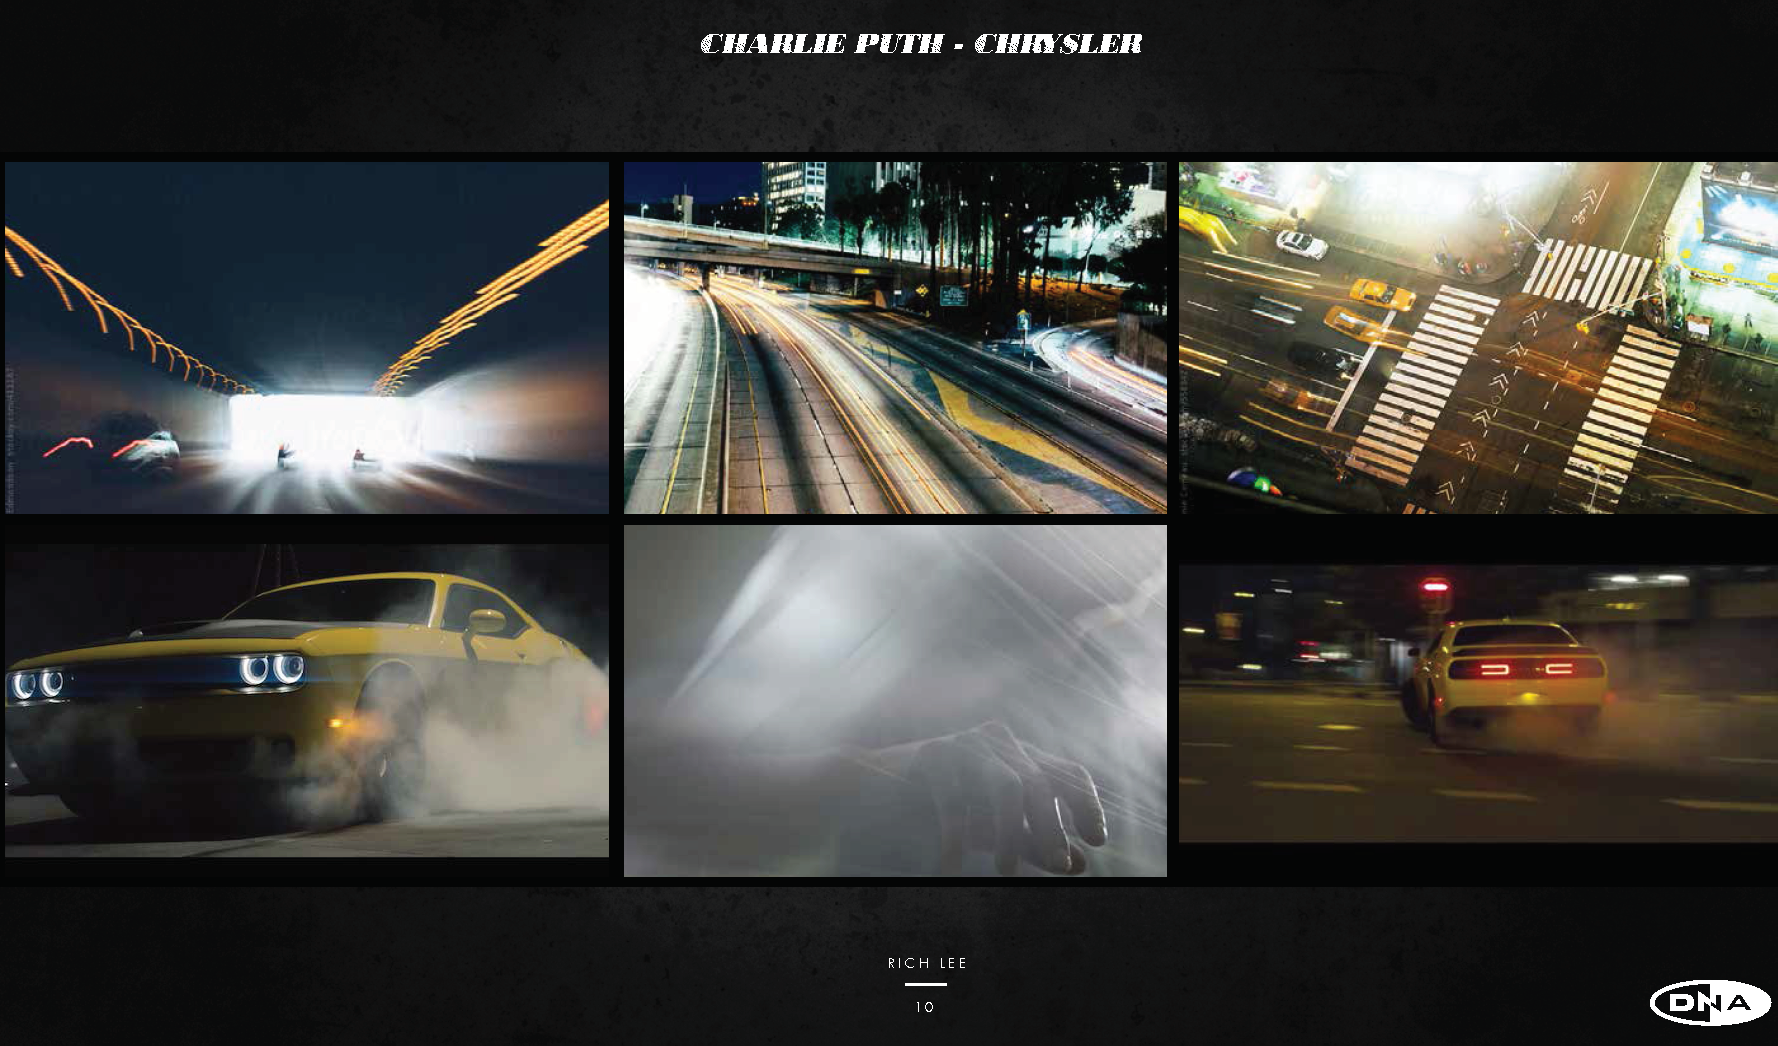 CP_Chrysler_101215_1_Page_10.png